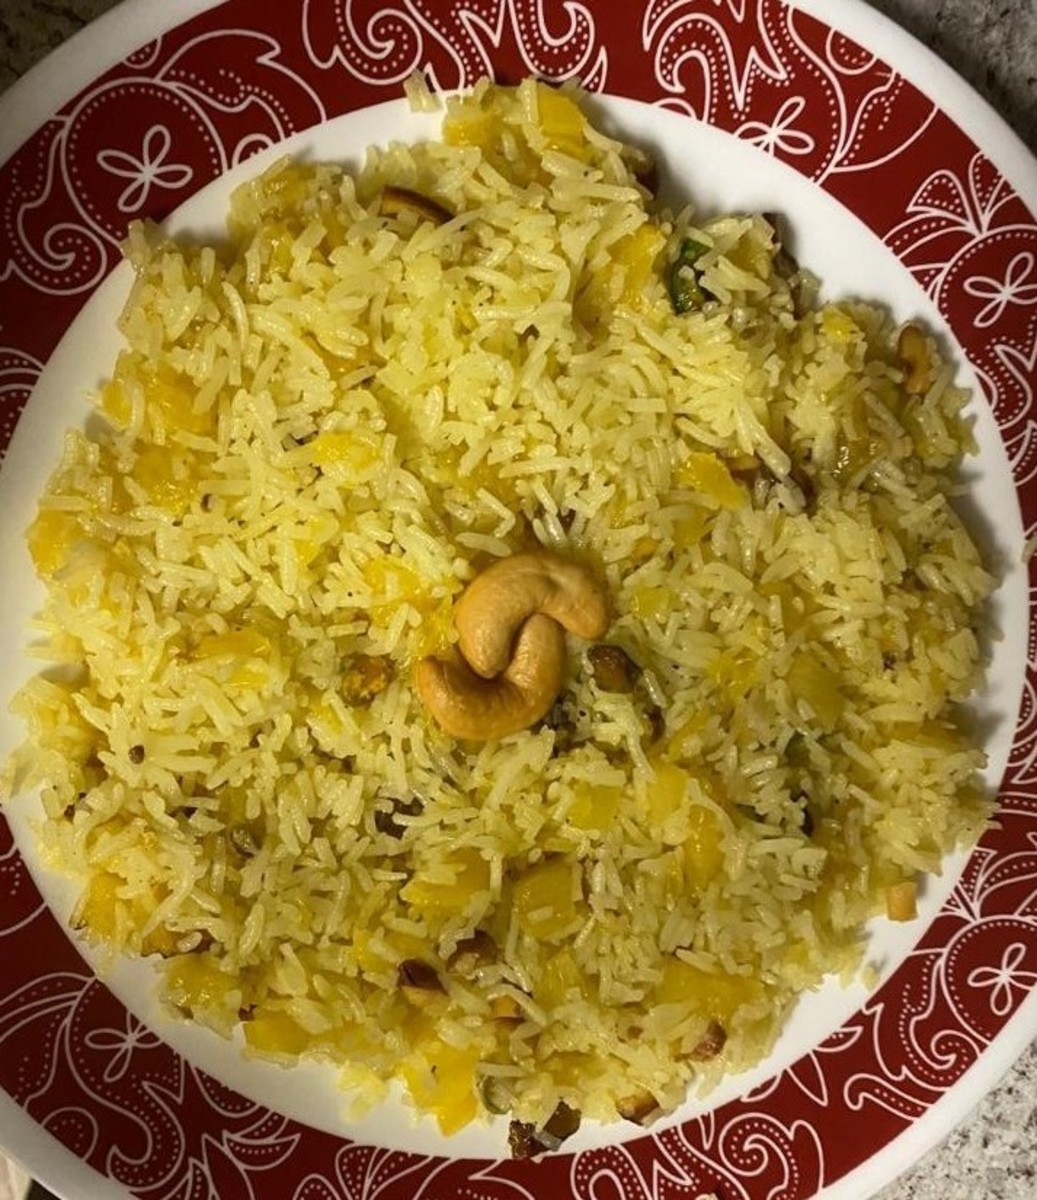 Pineapple sweet rice with added nuts